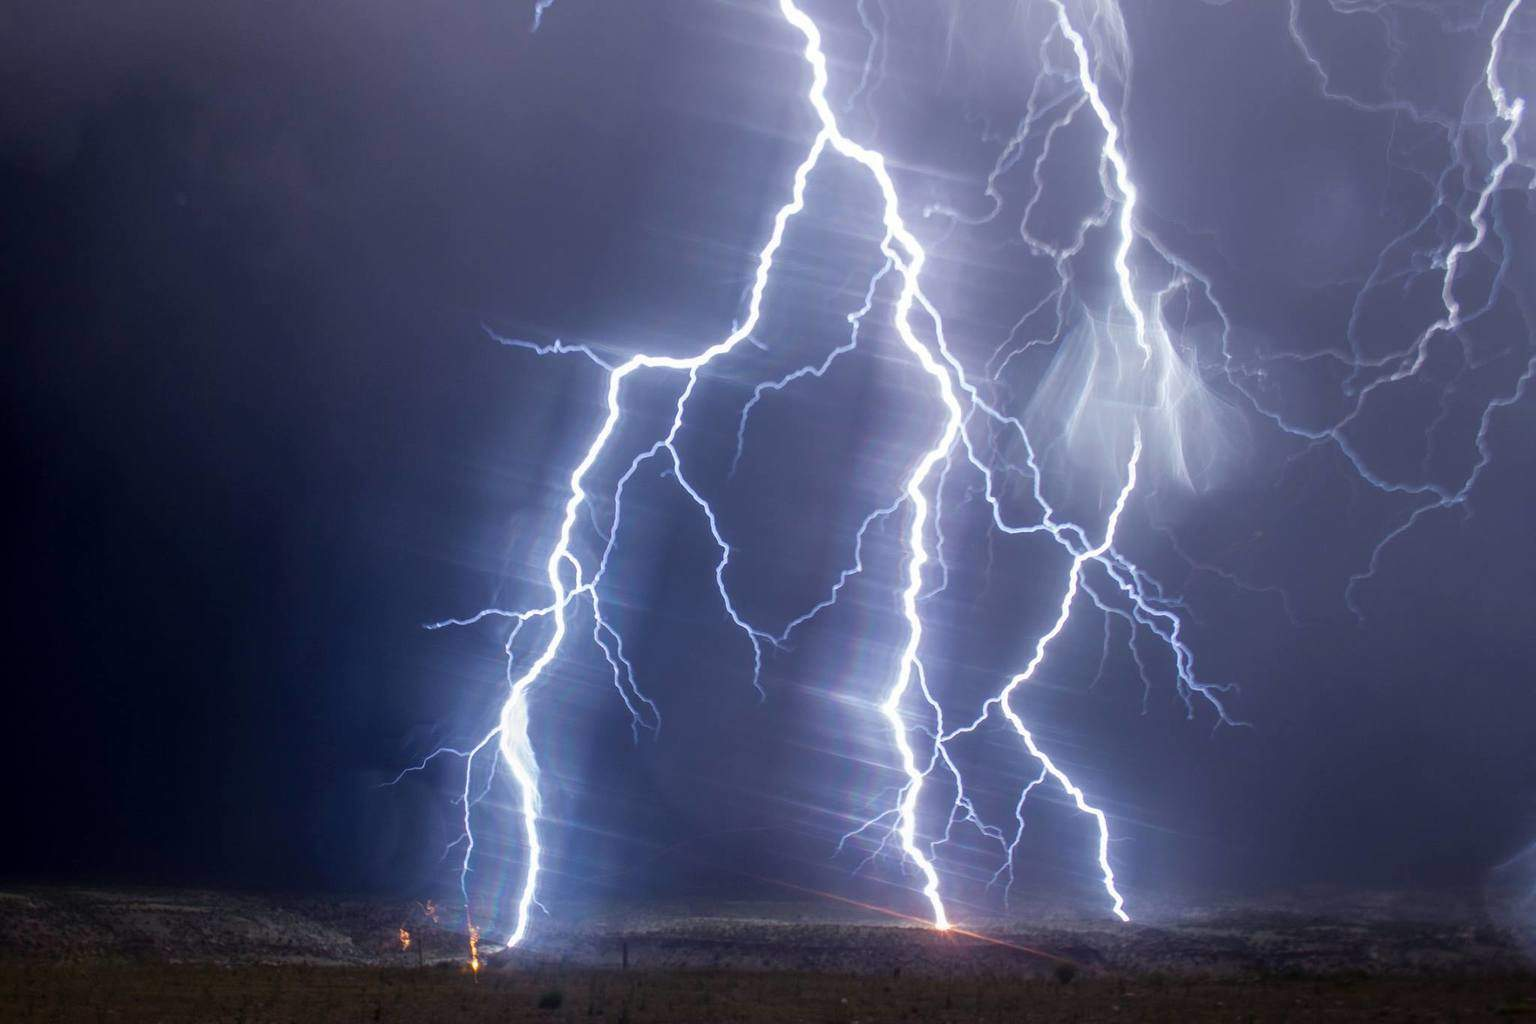 A little something from last night's electrical storm over Grand Junction, Colorado through the rainy car window. You know, when you think maybe the next strike might be too close?